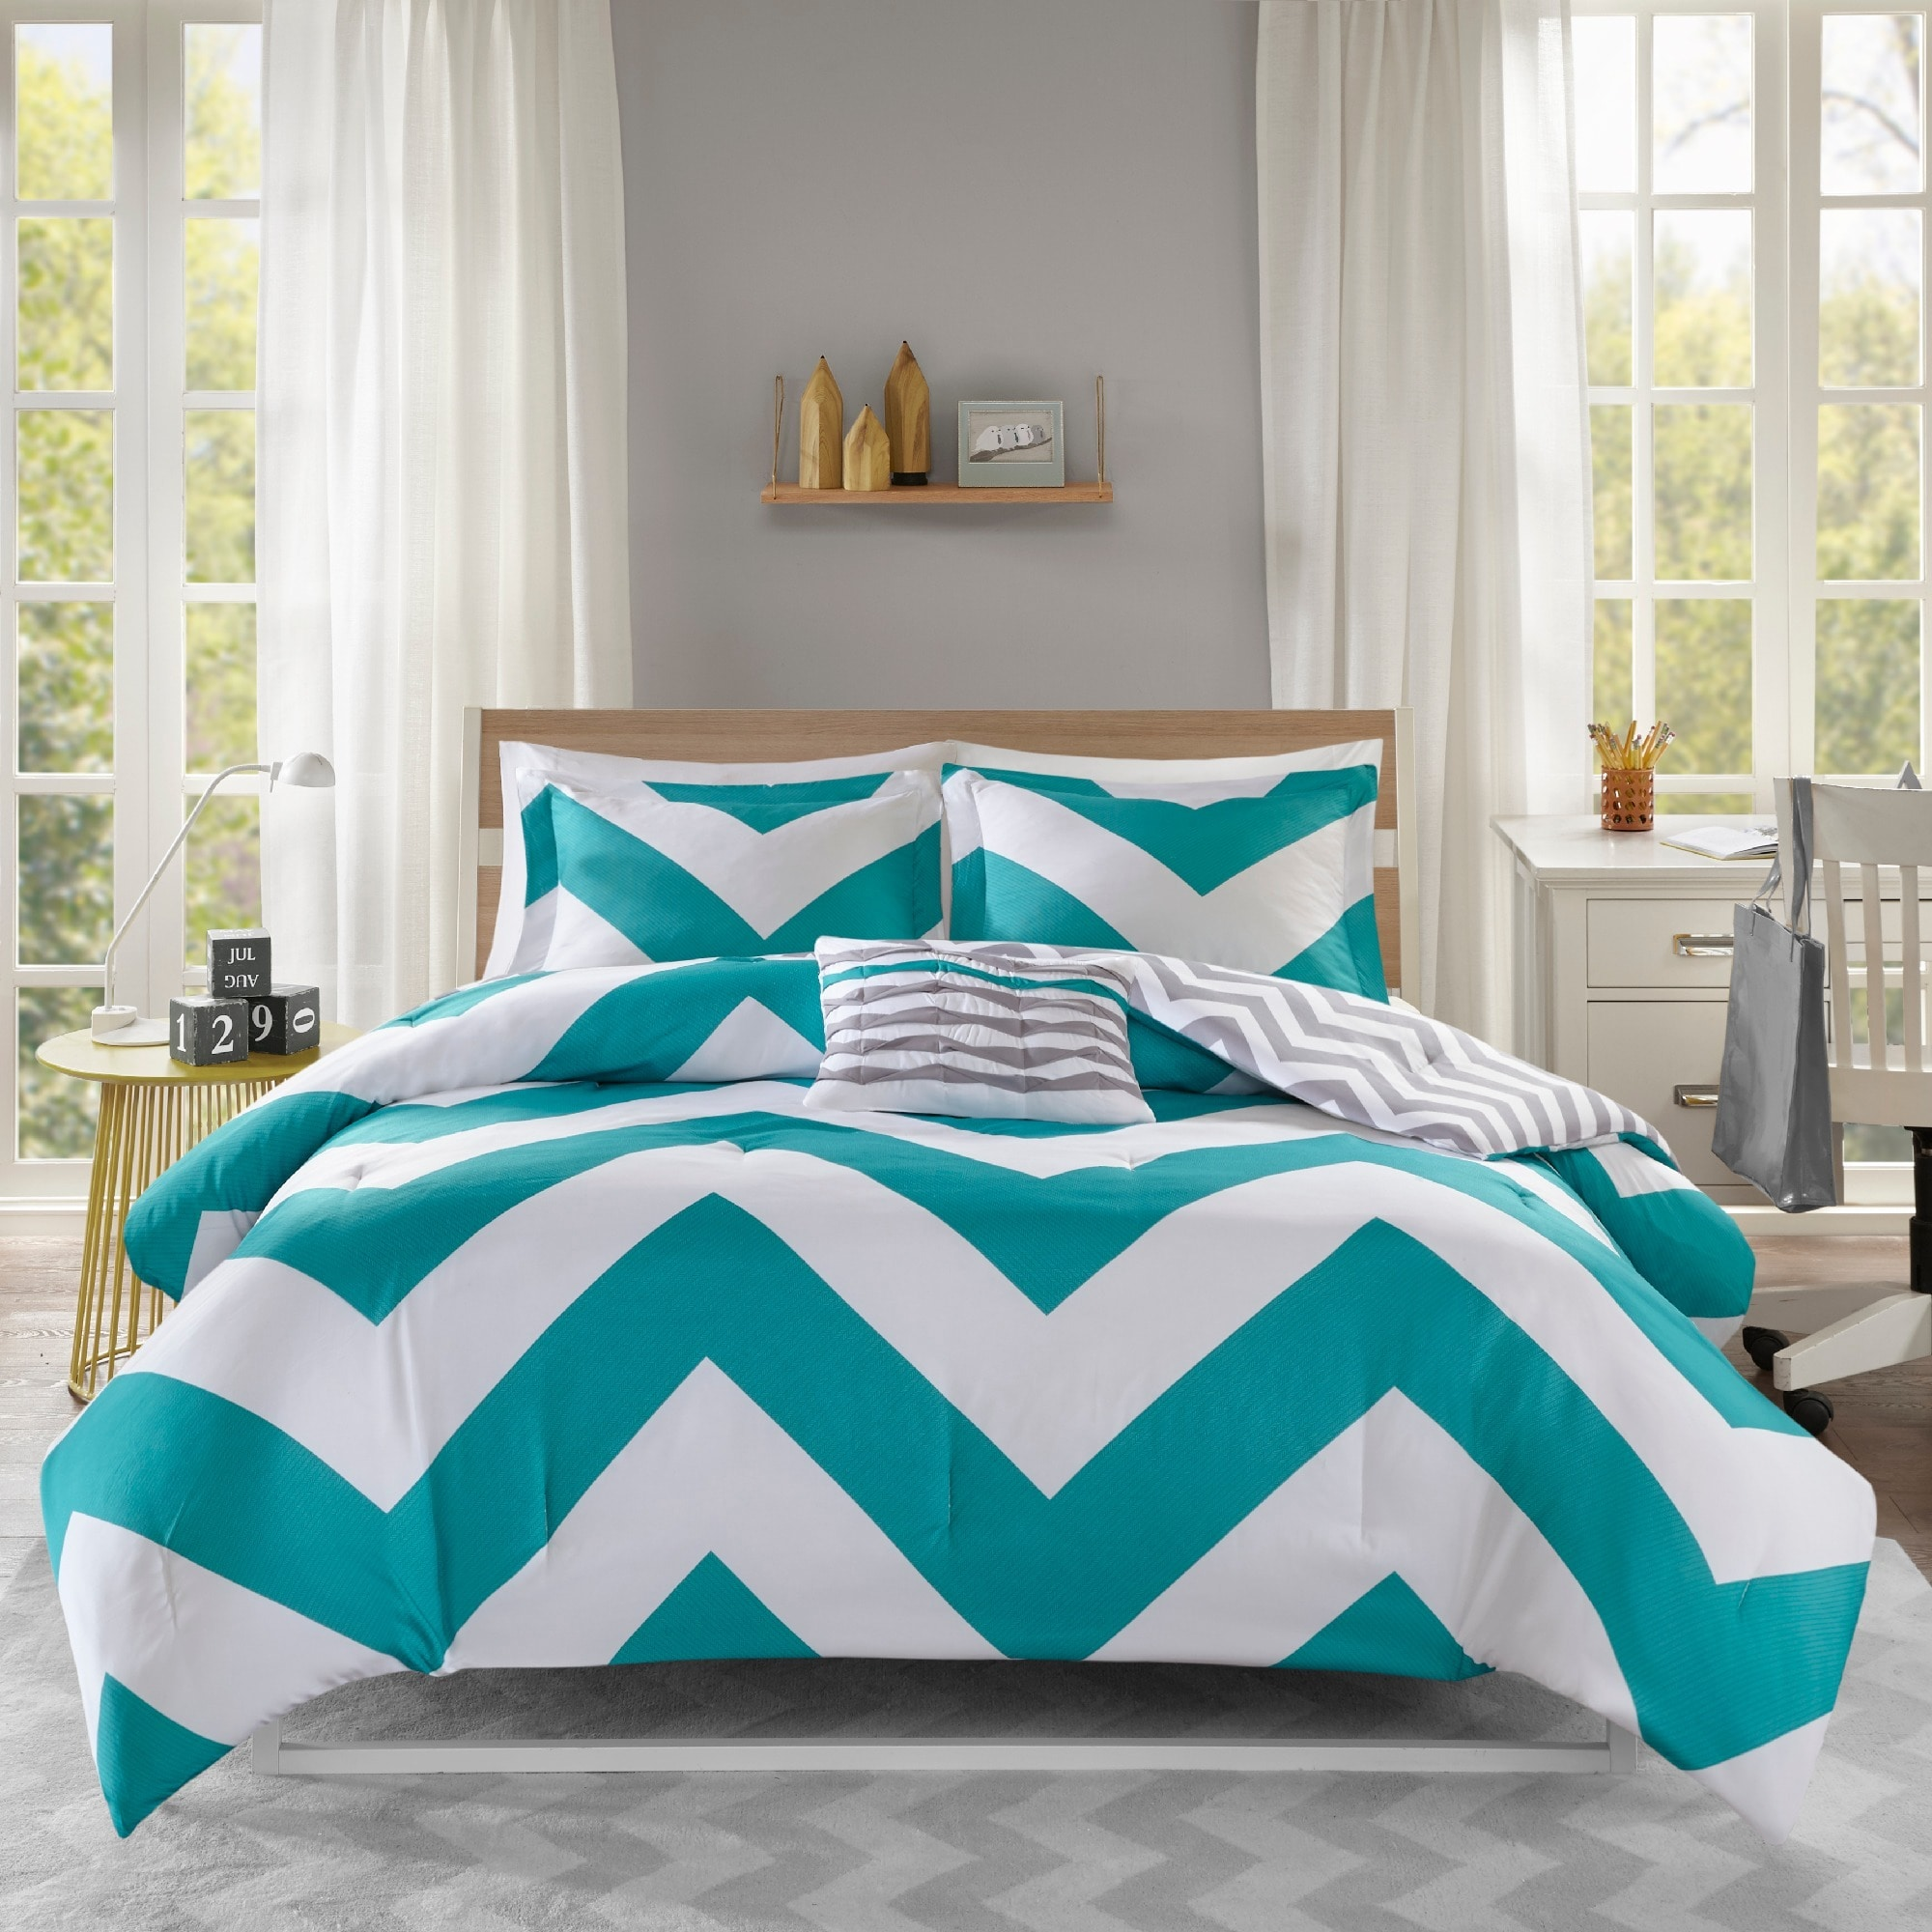 sets bedding set blue twin canada beige bed queen colorful comforter teal aqua color brown grey and